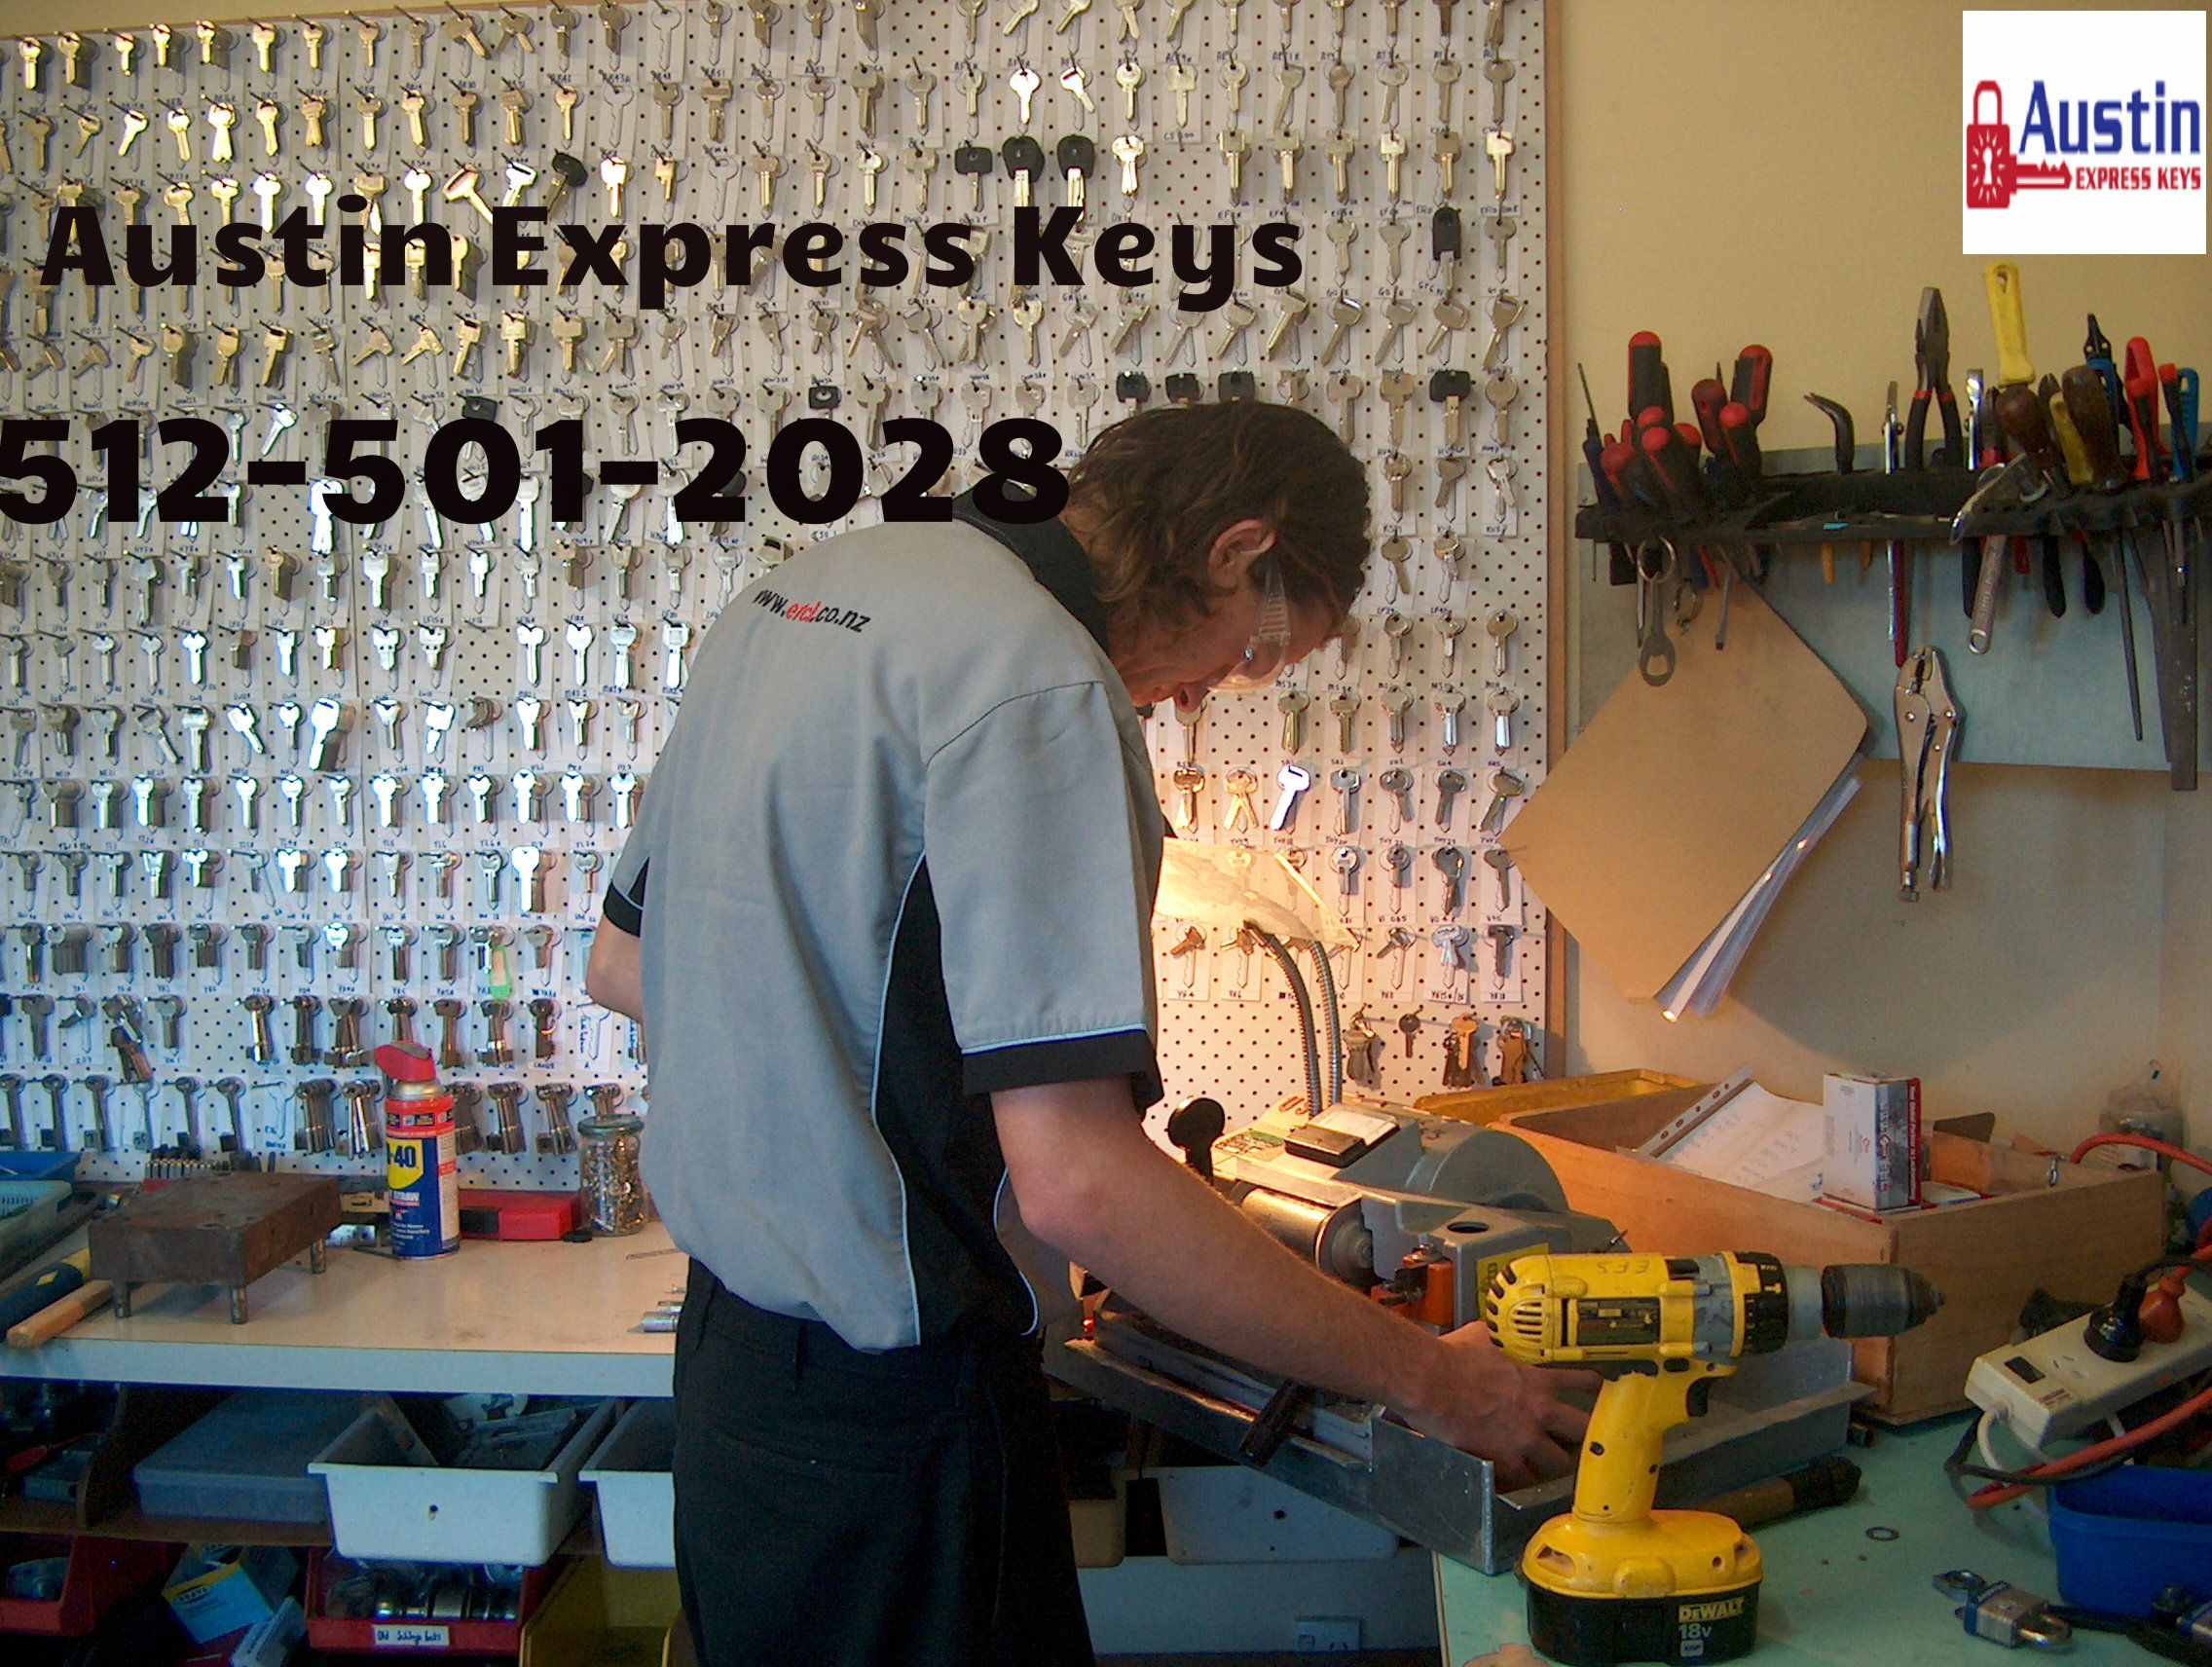 Austin express keys is the one of the top most industry of